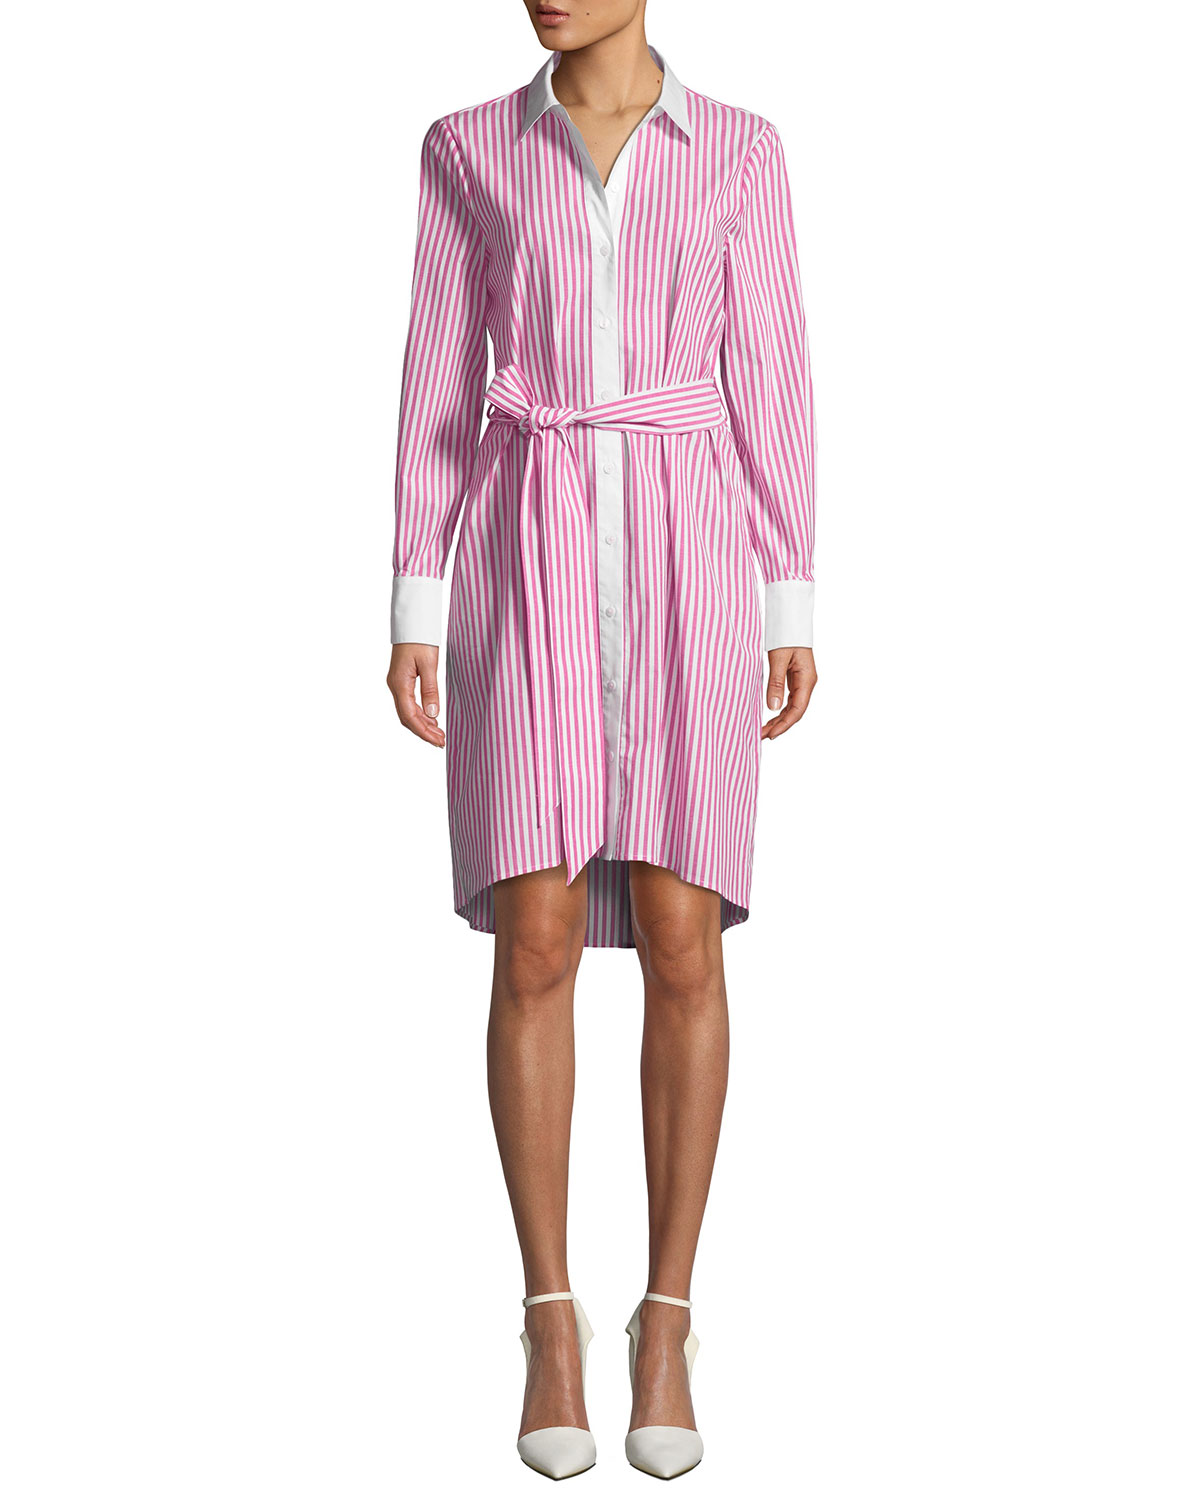 Candy Stripe Shirtdress in Pink/White